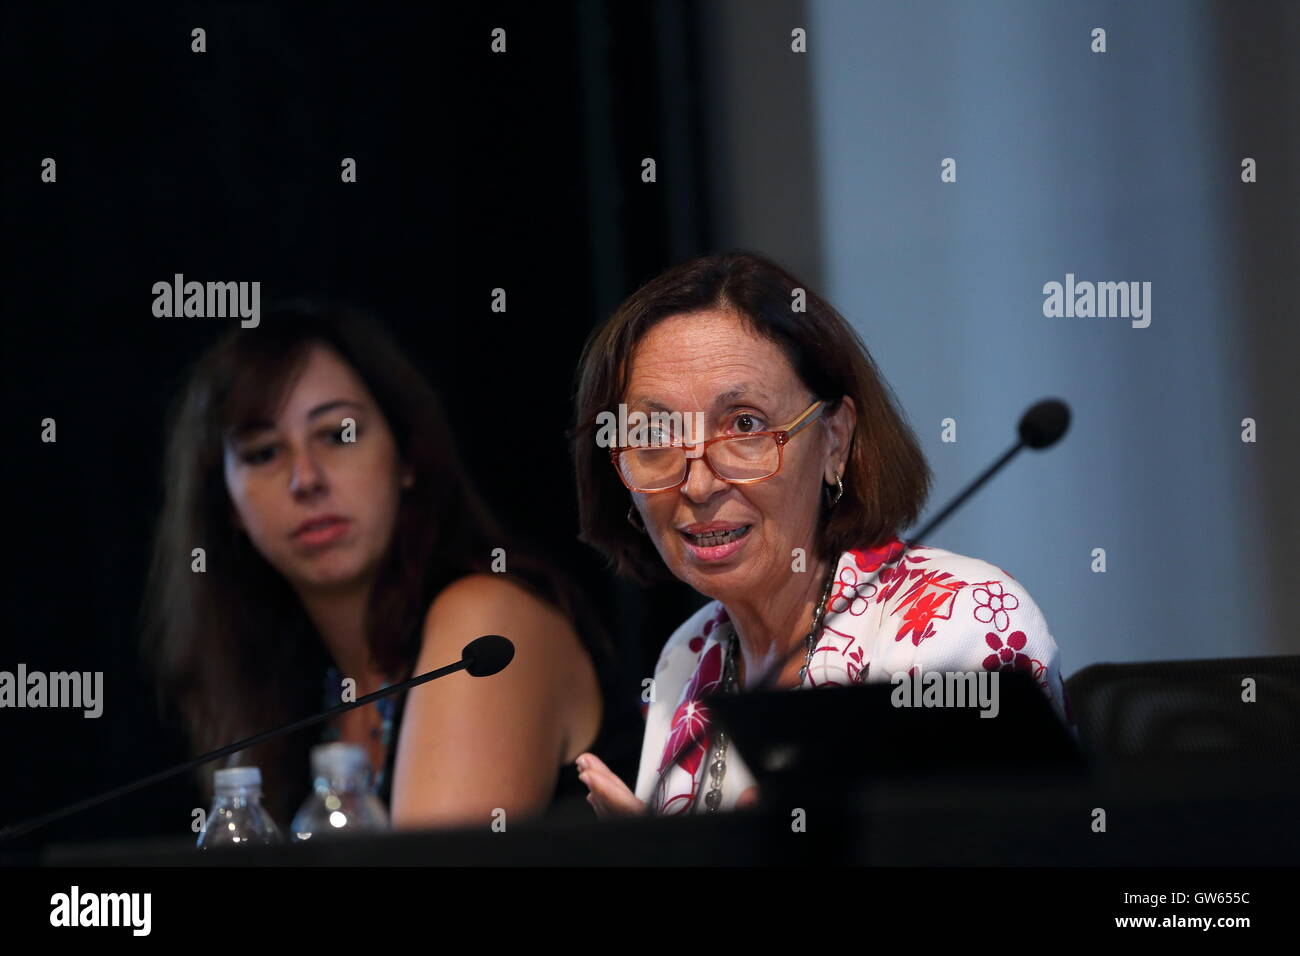 Roma, Italy. 12th Sep, 2016. (R) Flavia Marzano during the Press conference of Social Media Week Rome, which is - Stock Image